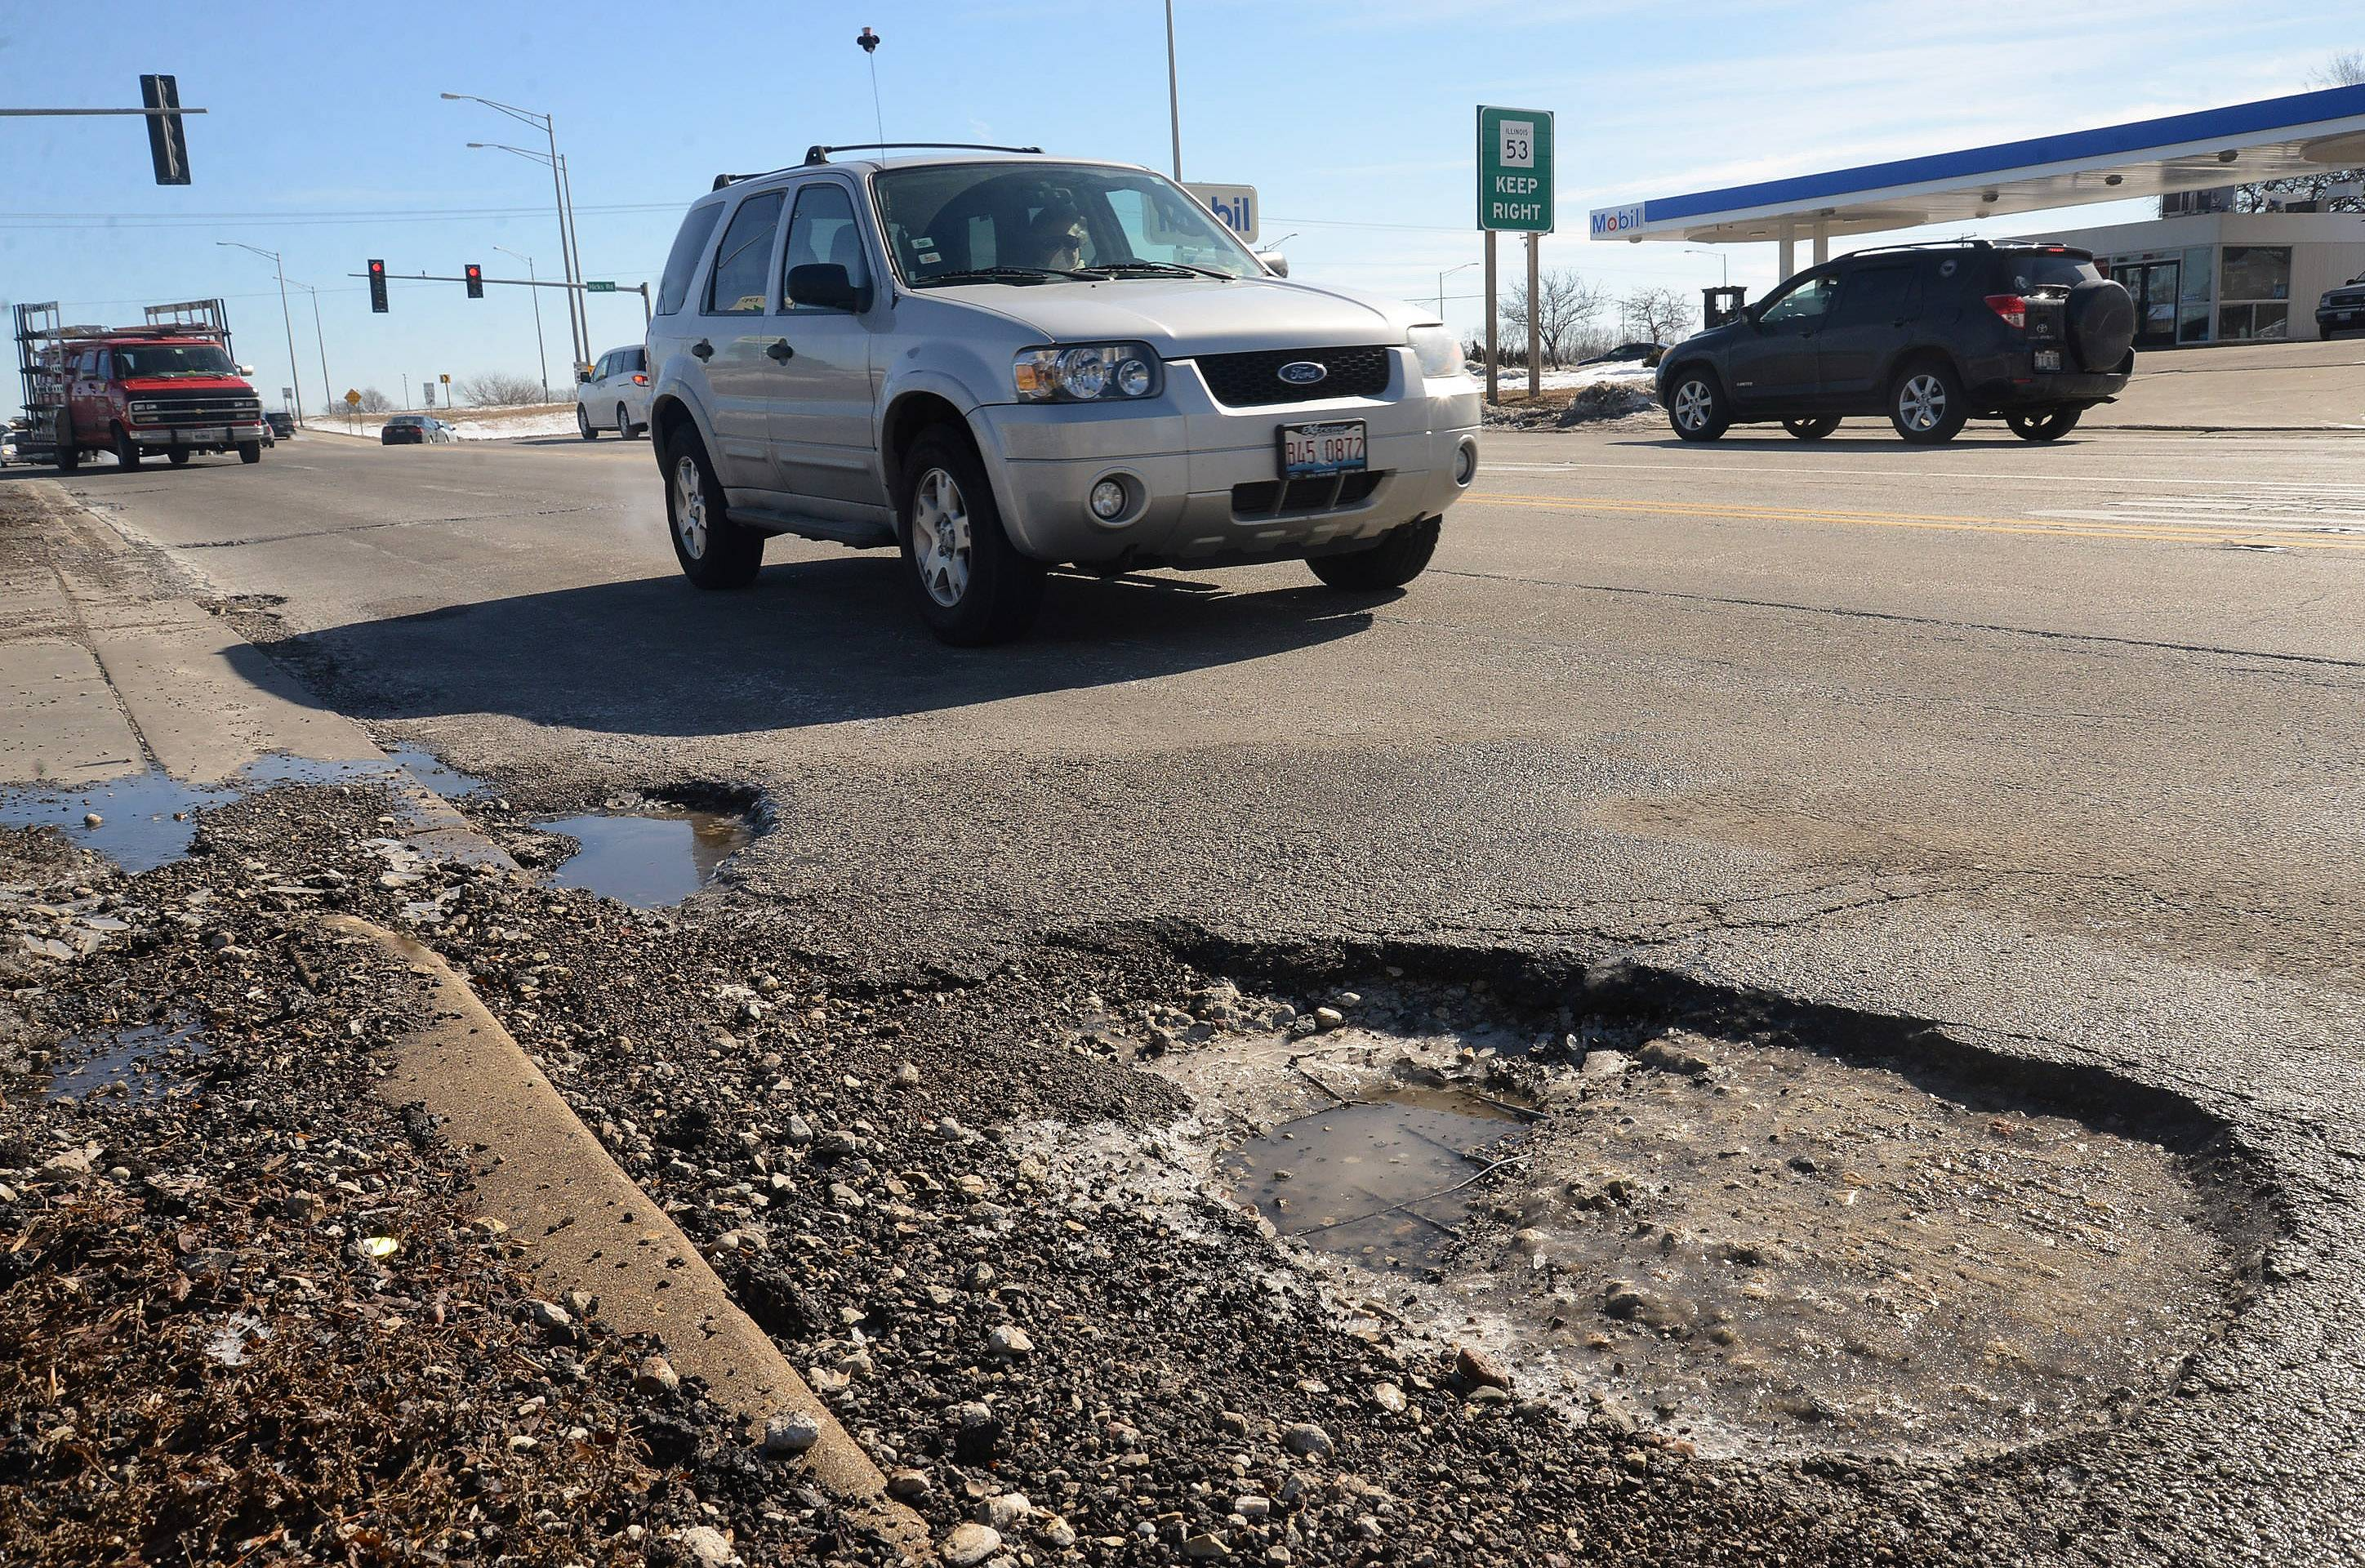 Bob Chwedyk/bchwedyk@dailyherald.comPothole near intersection of Euclid Avenue and Hicks Road in Rolling Meadows.